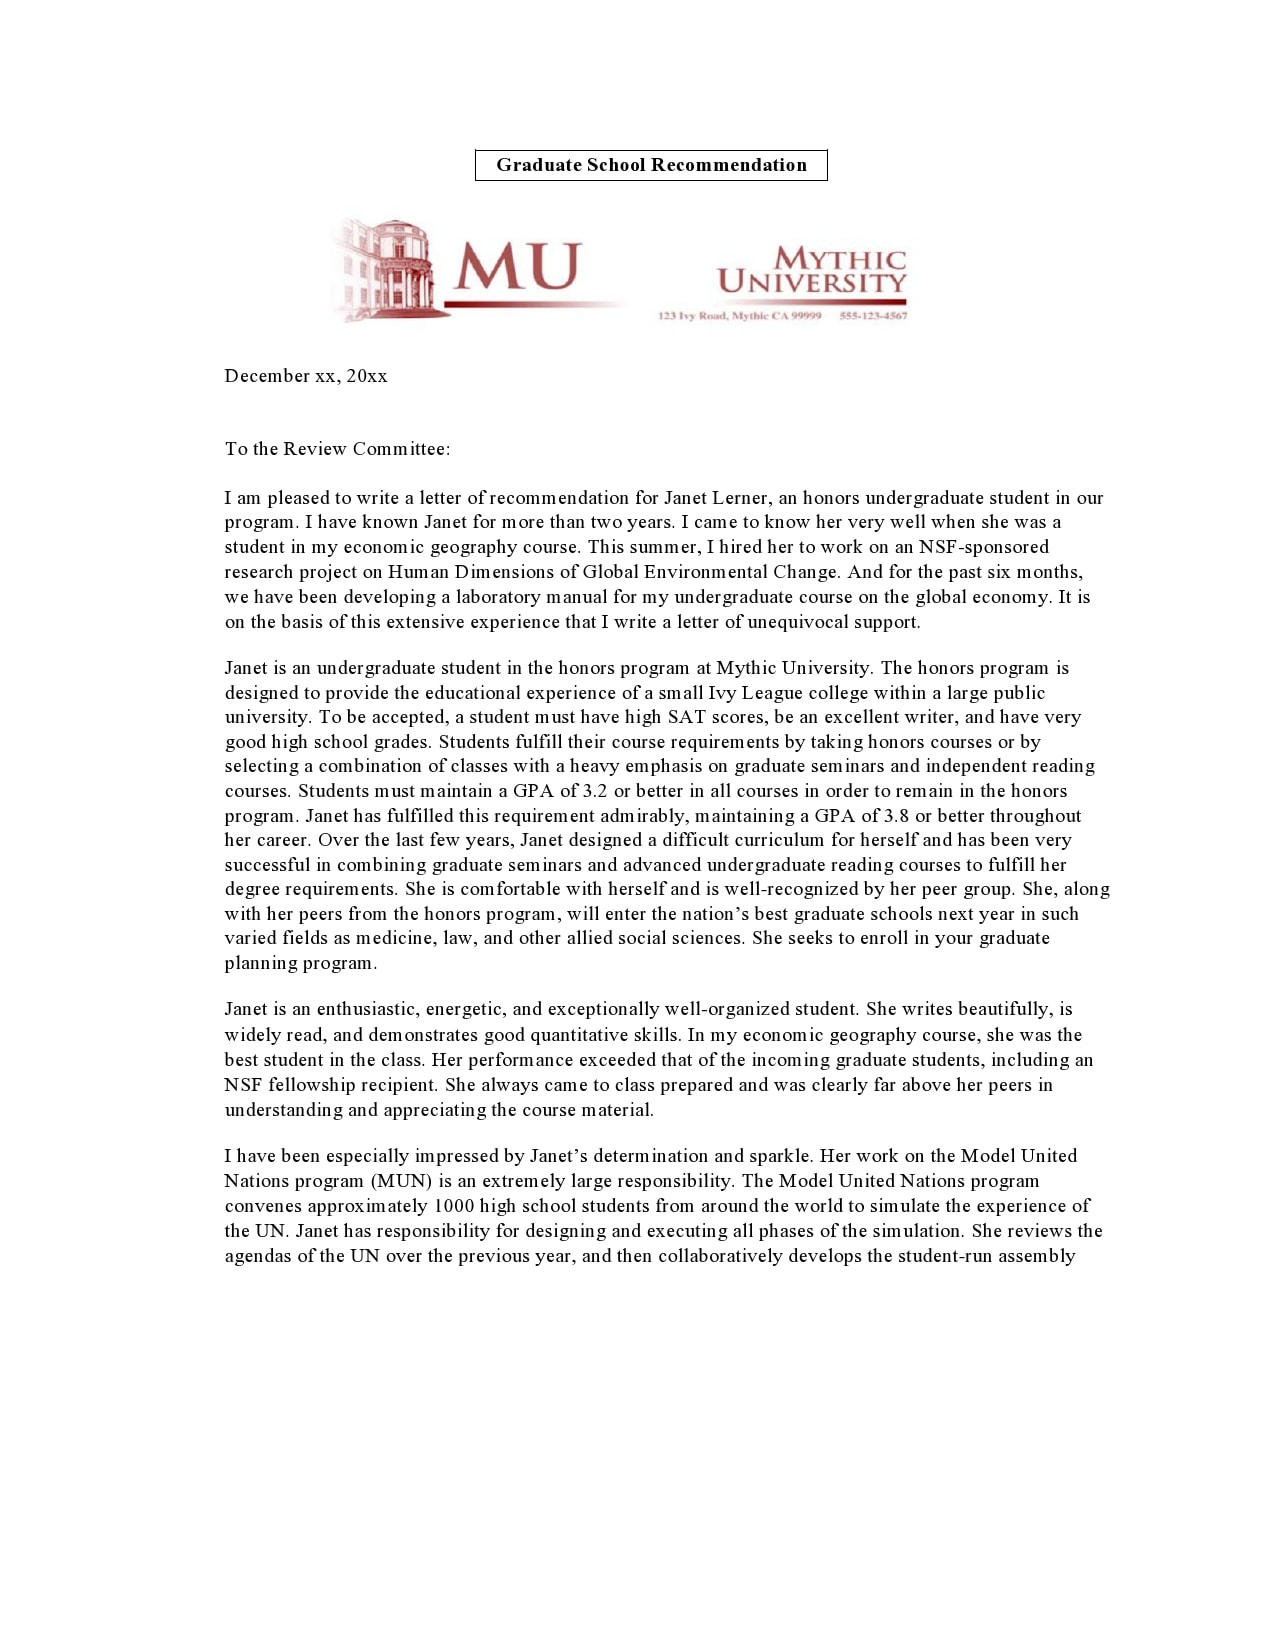 letter of recommendation for graduate school 25